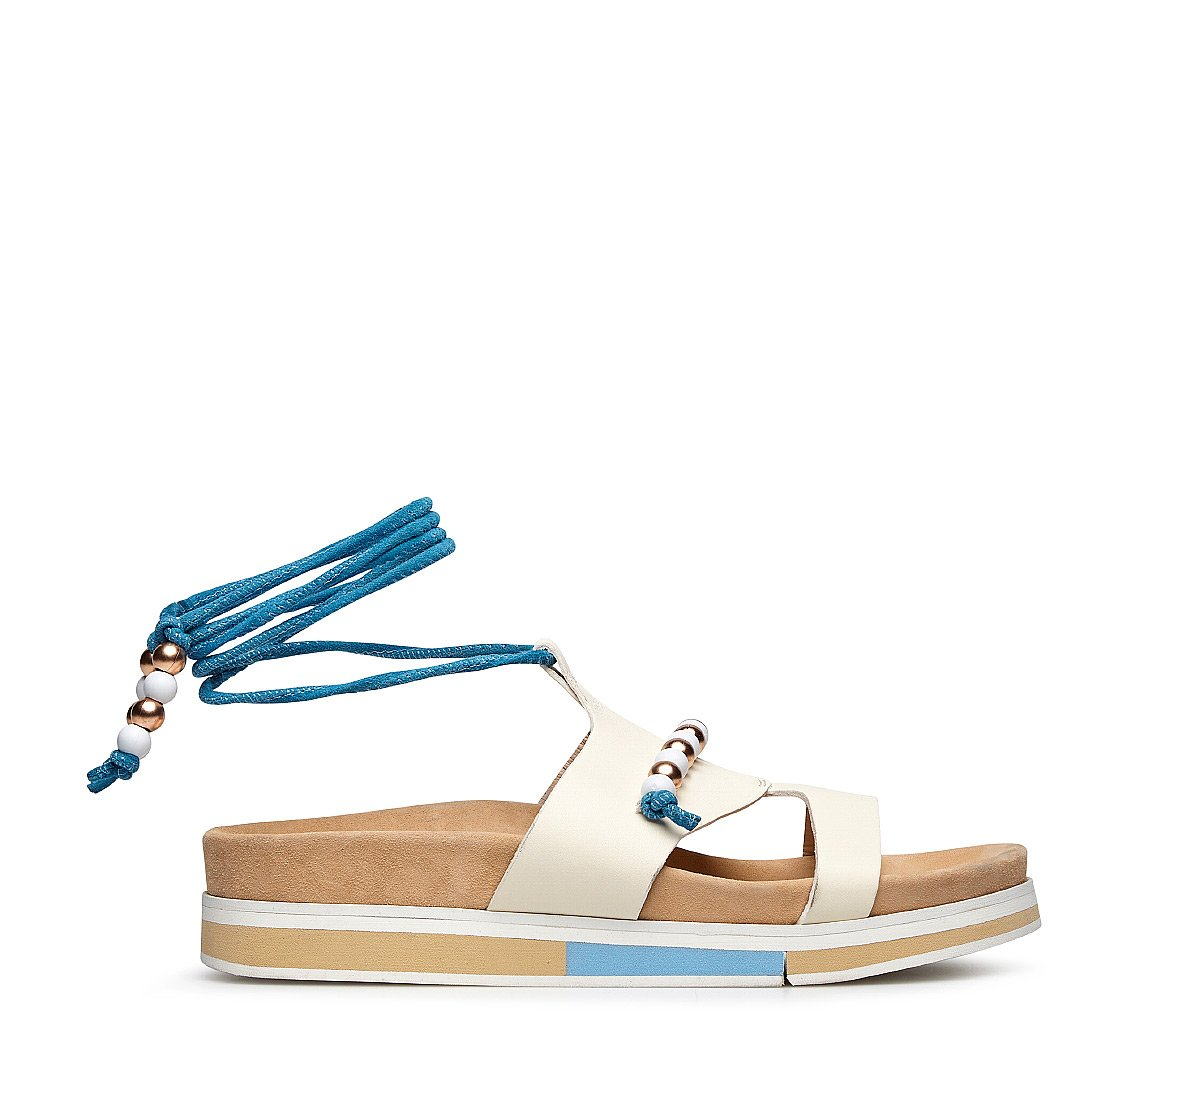 Suede and calfskin sandal